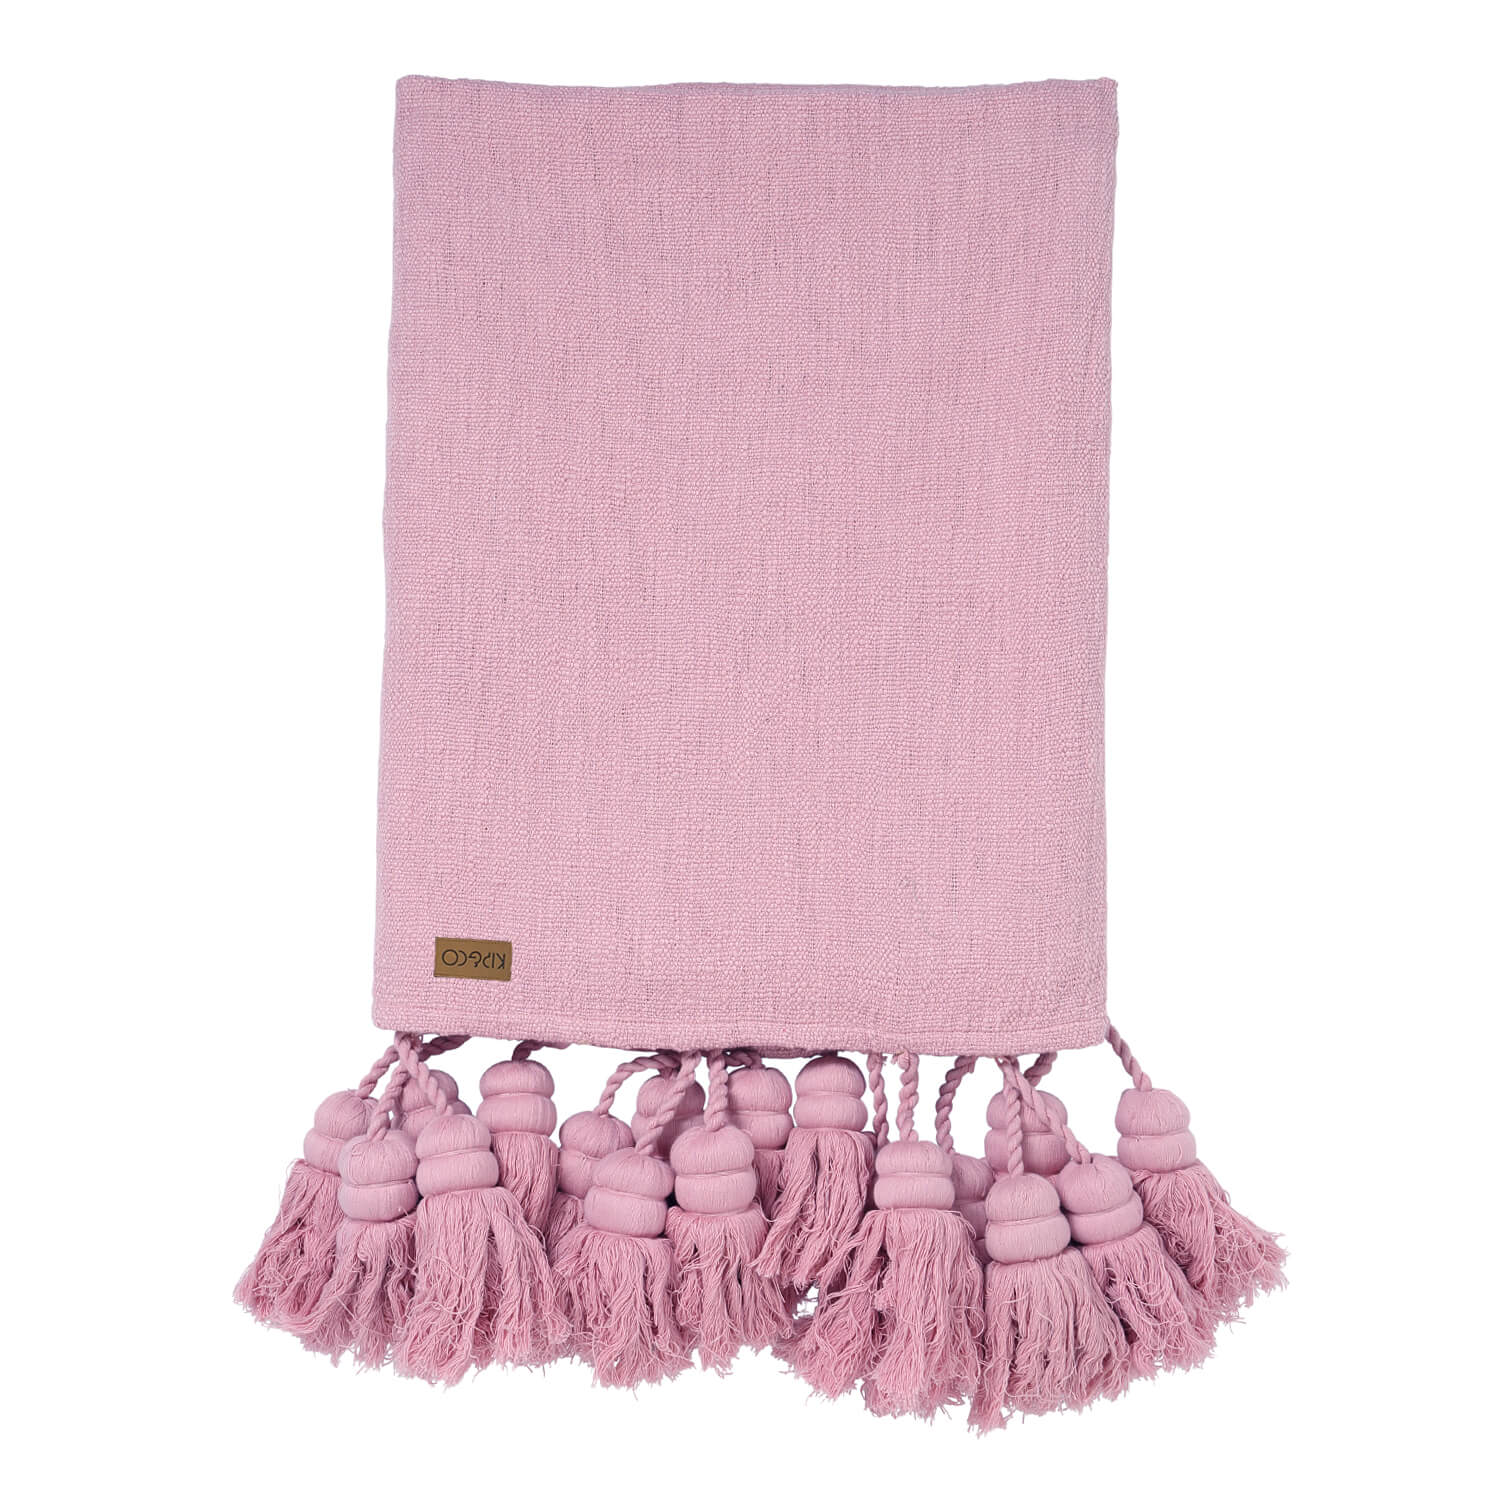 Kip and co lilac tassel throw | The Home Maven